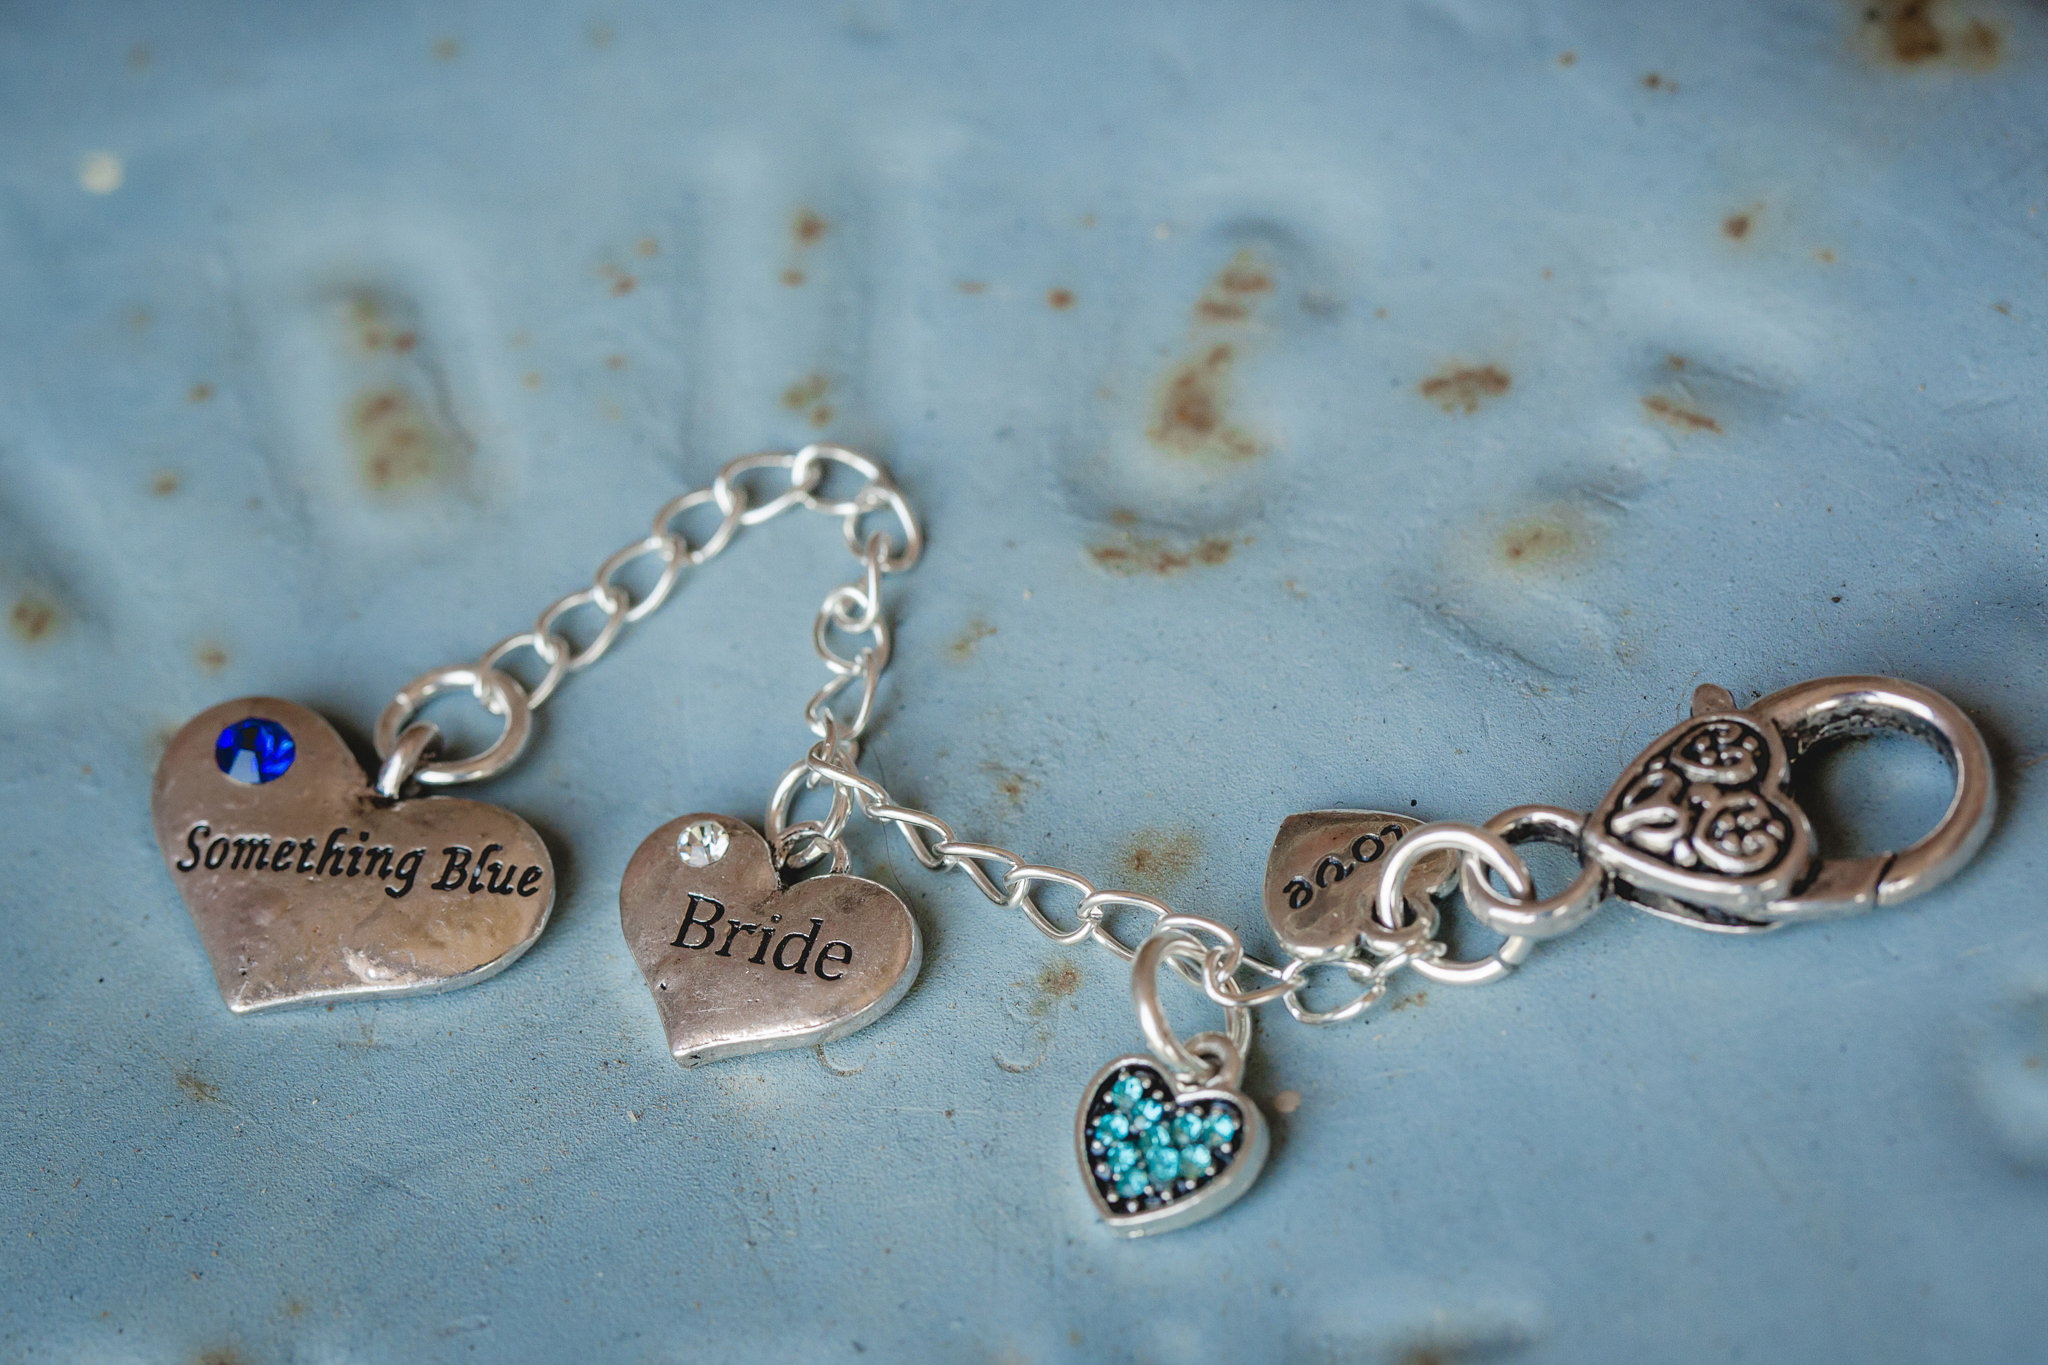 Bride's something blue is a charm bracelet to put in her bouquet